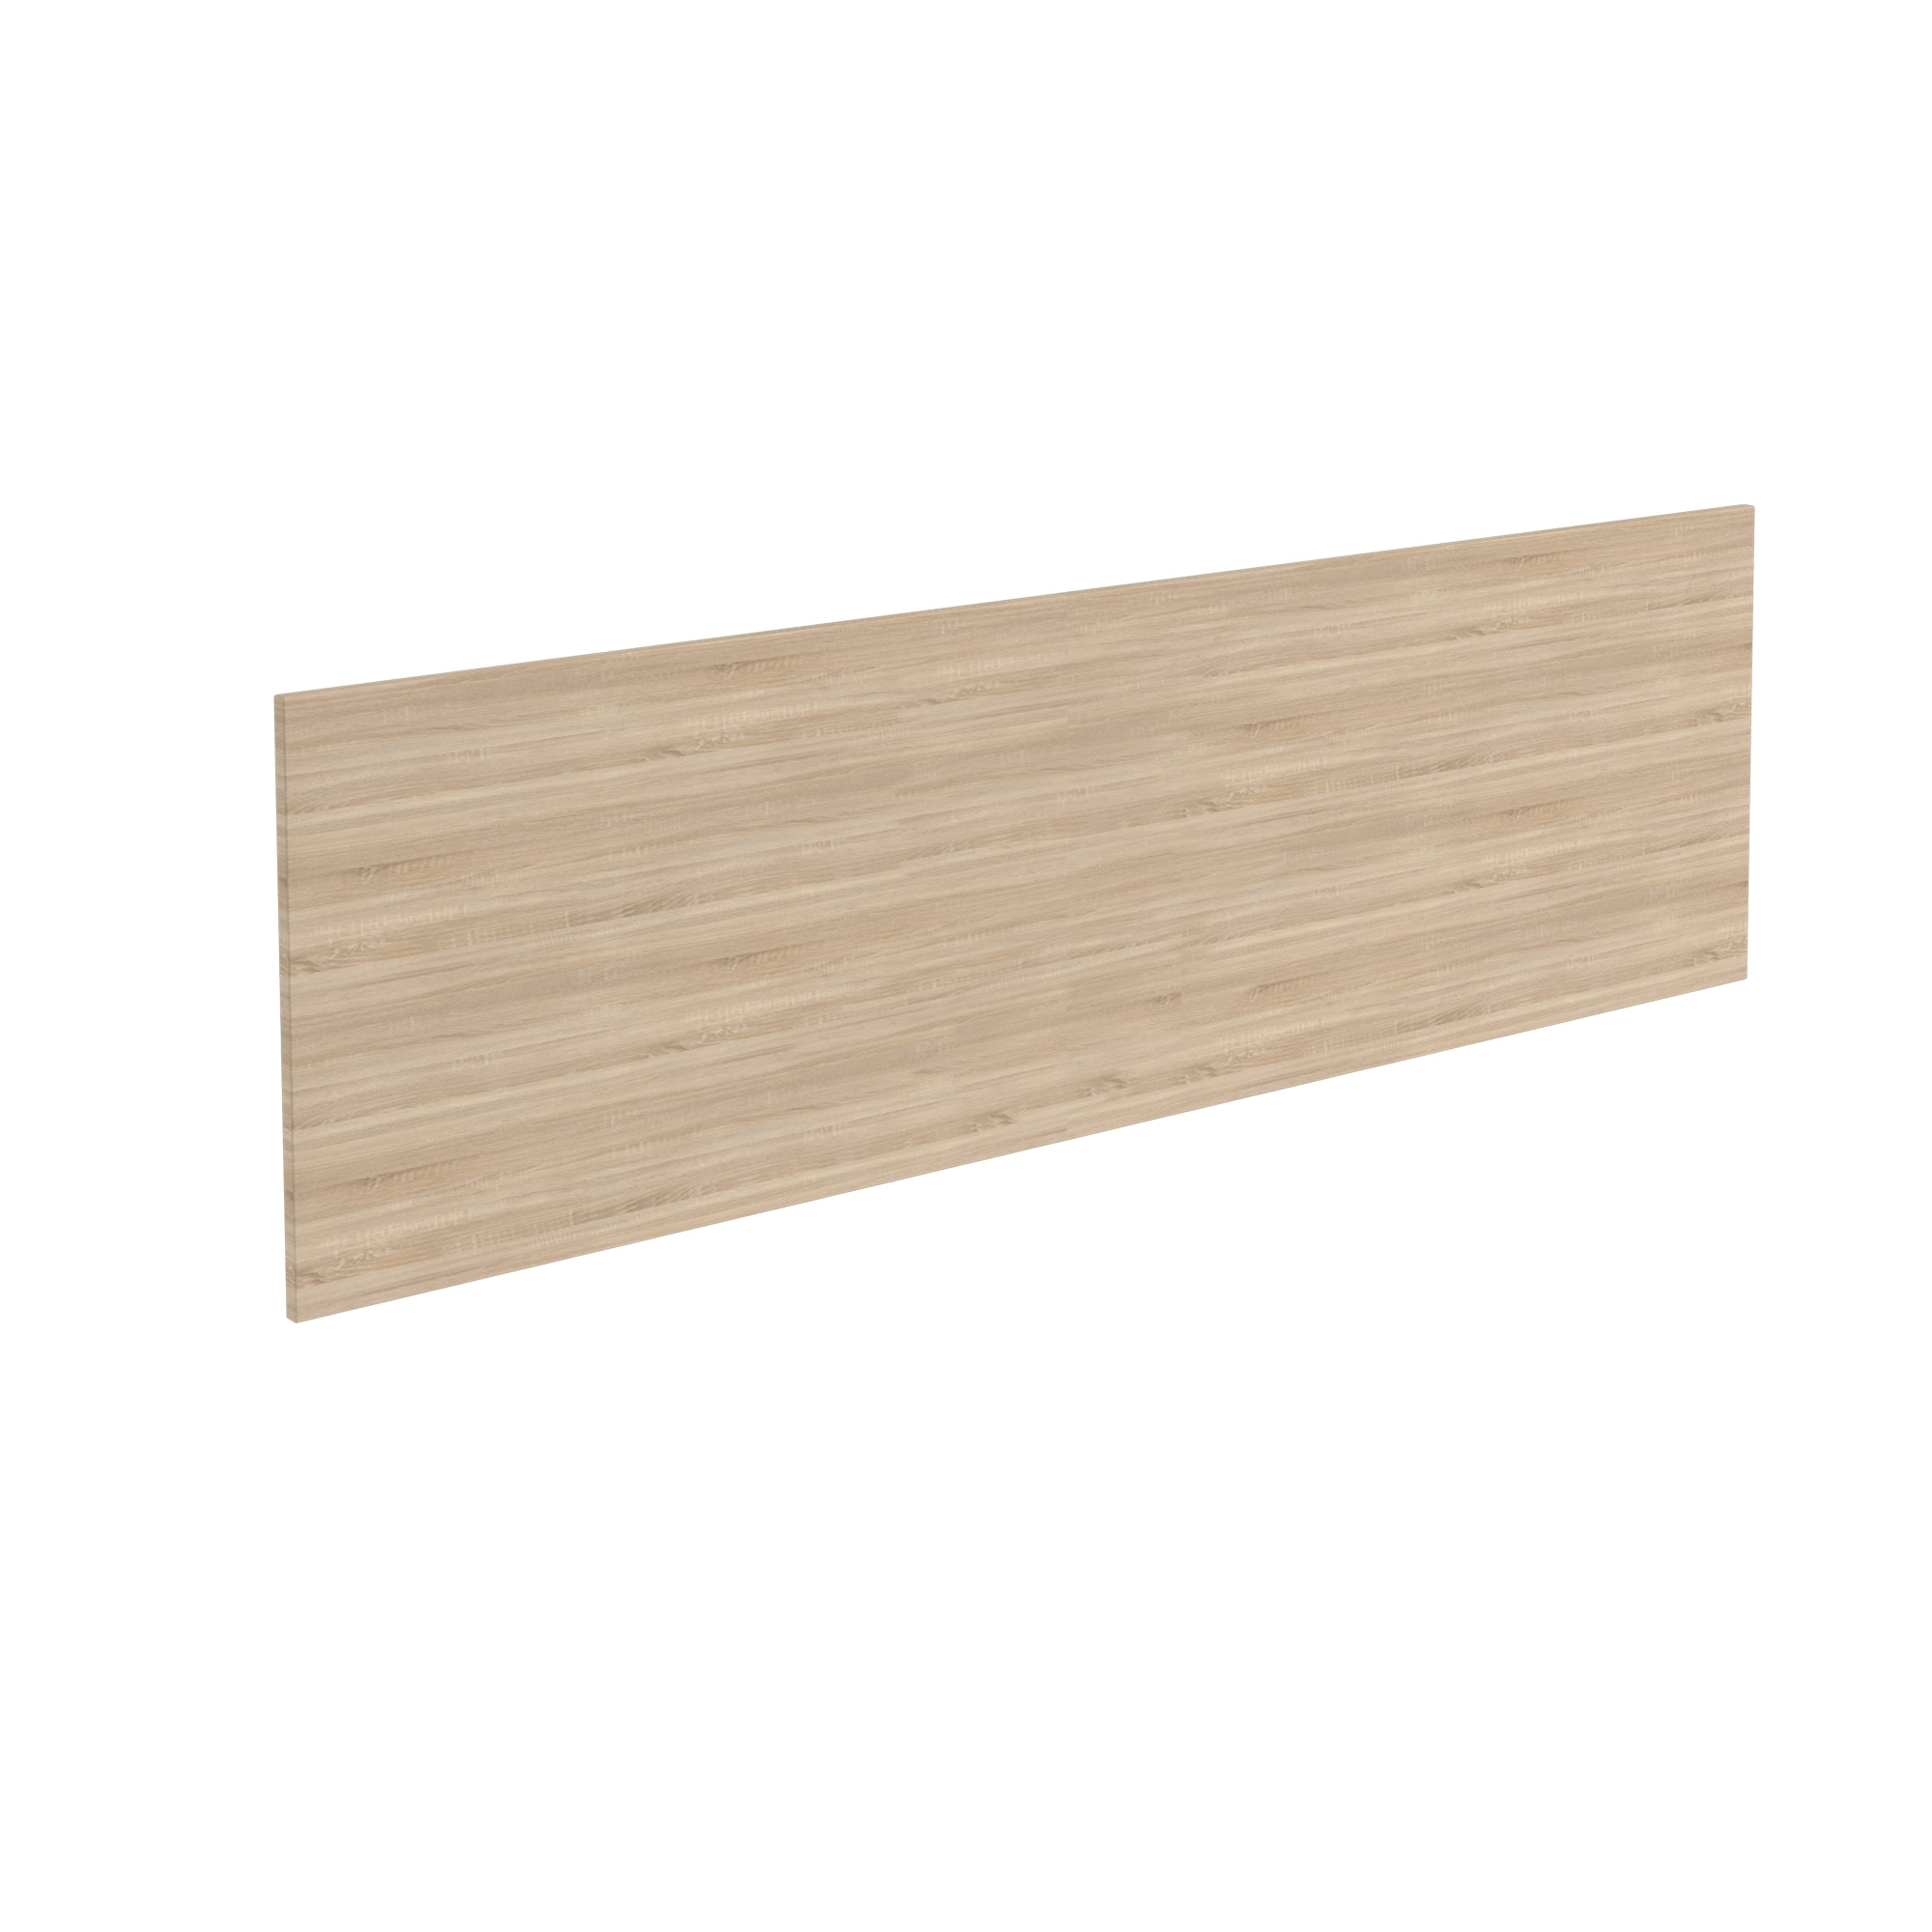 K-Vit Ikon 1700mm Bath Panel - Natural Oak